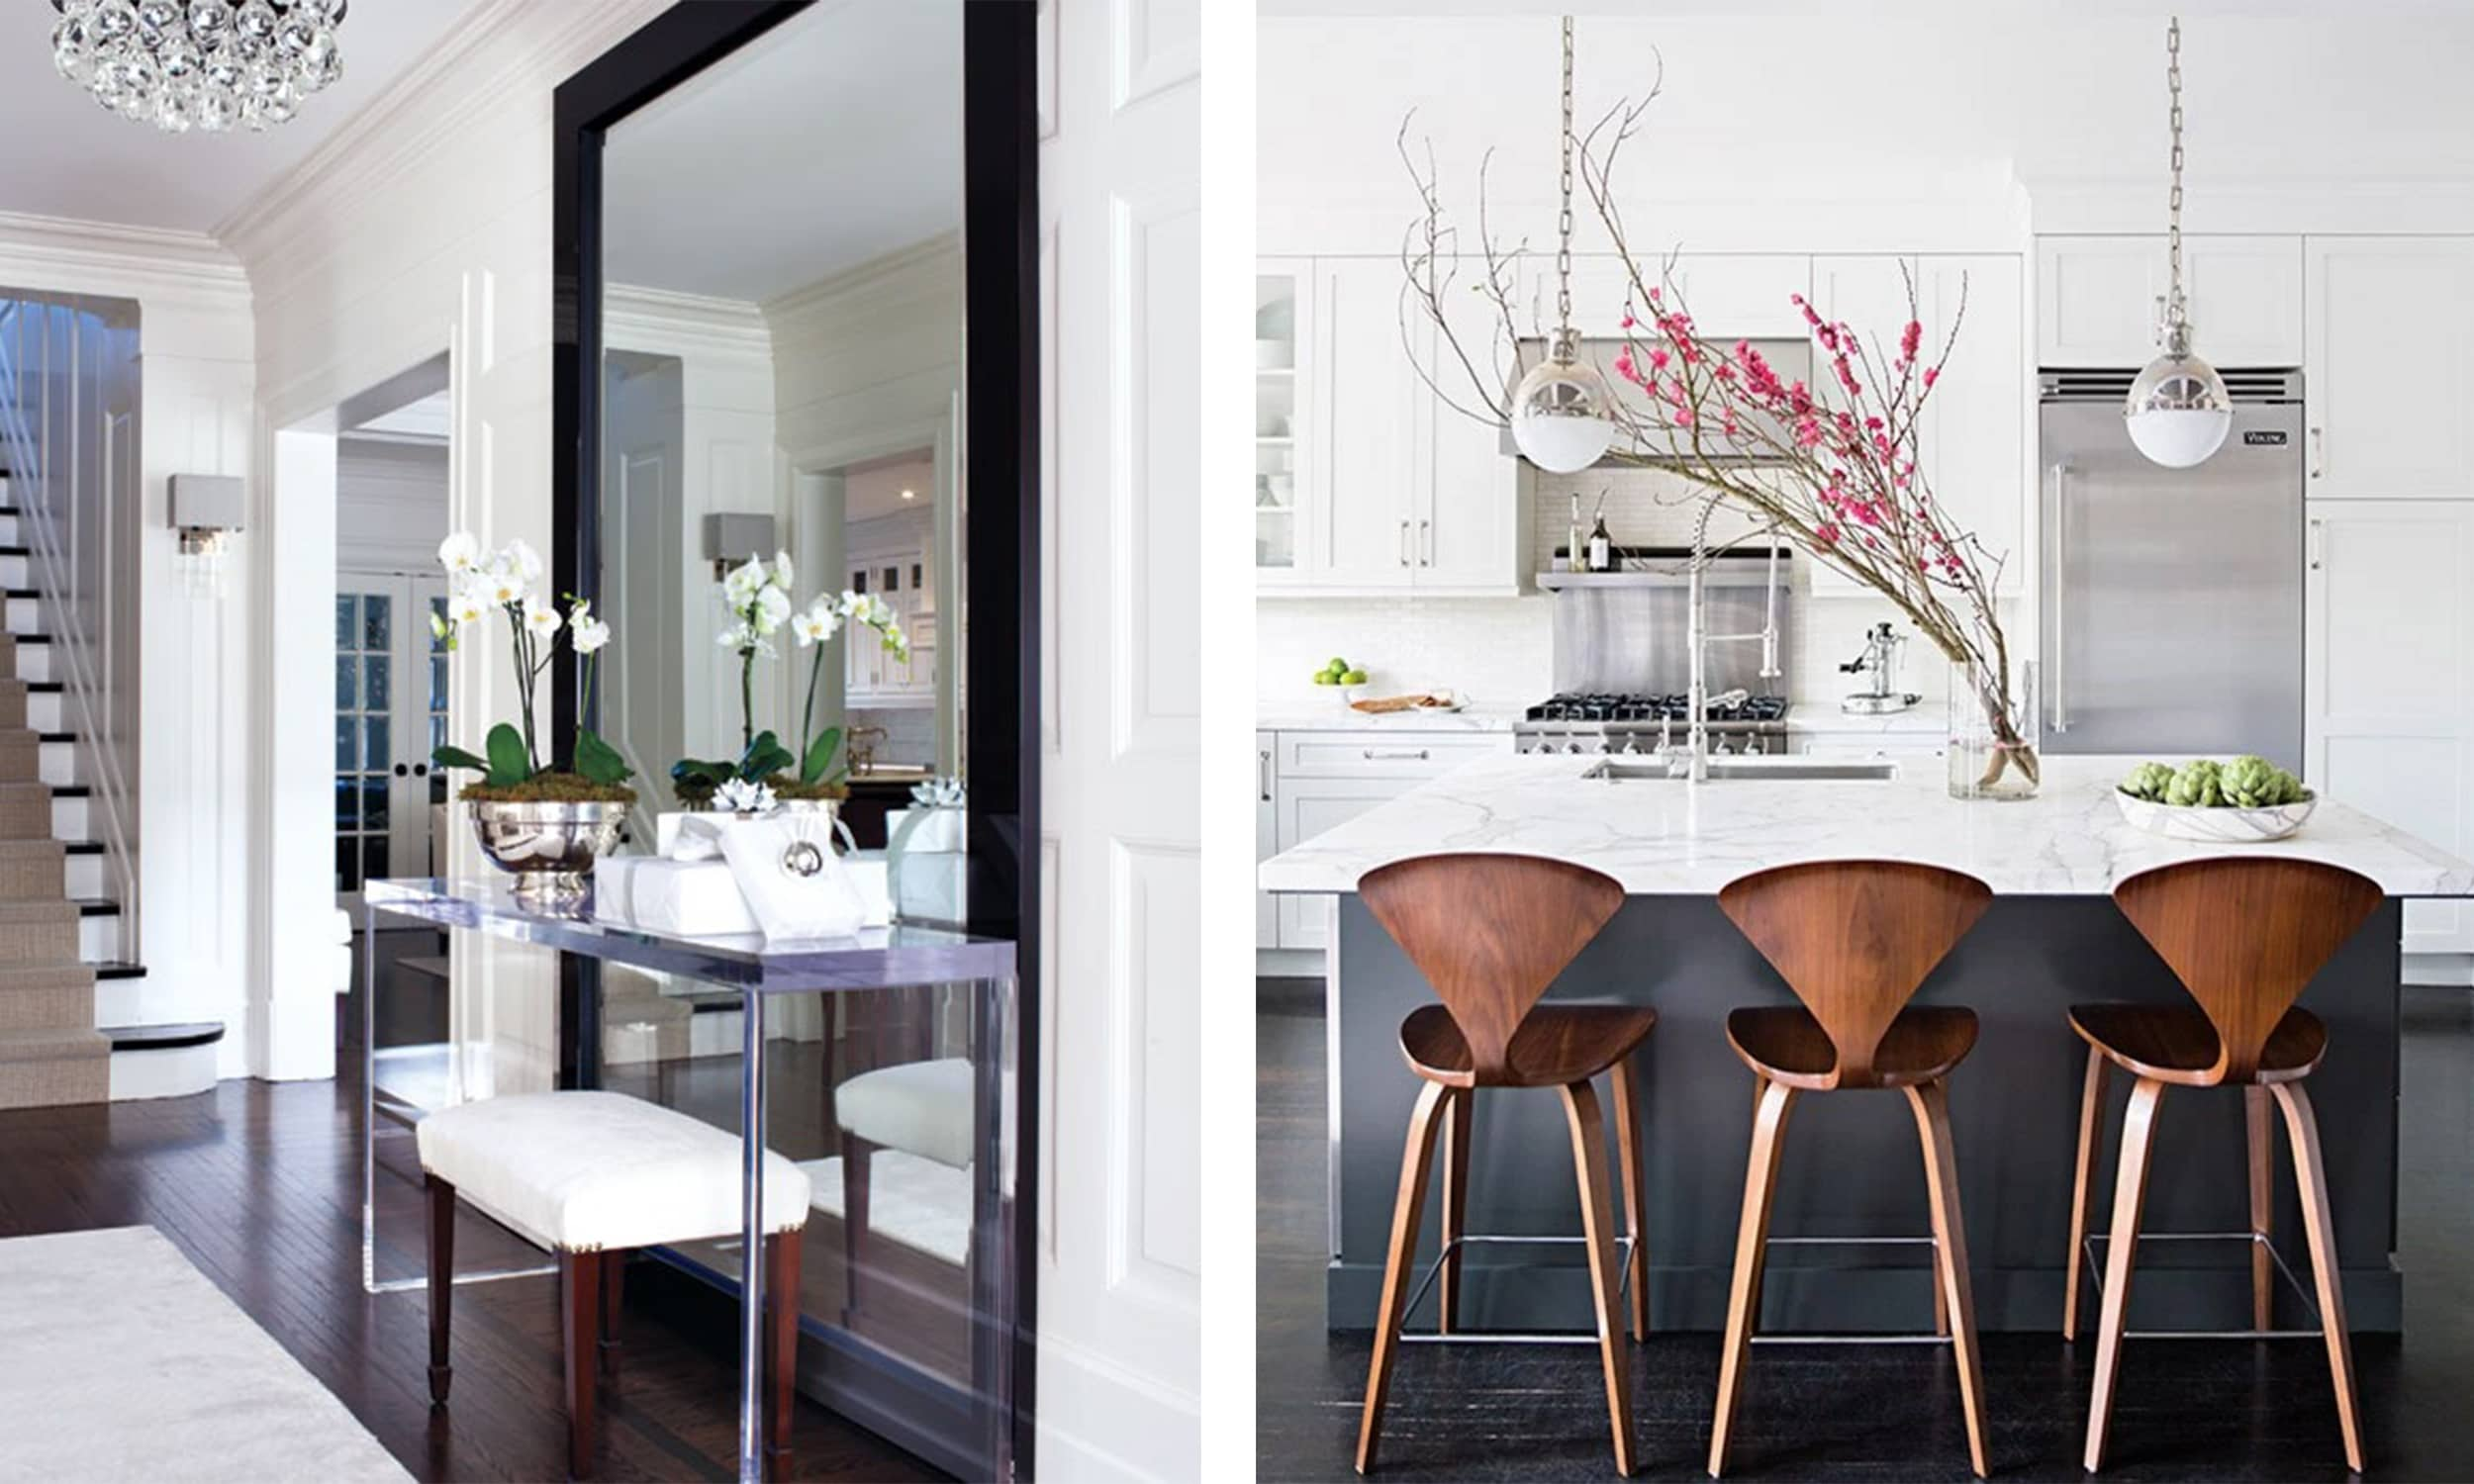 hygge foyer and kitchen with fresh flowers